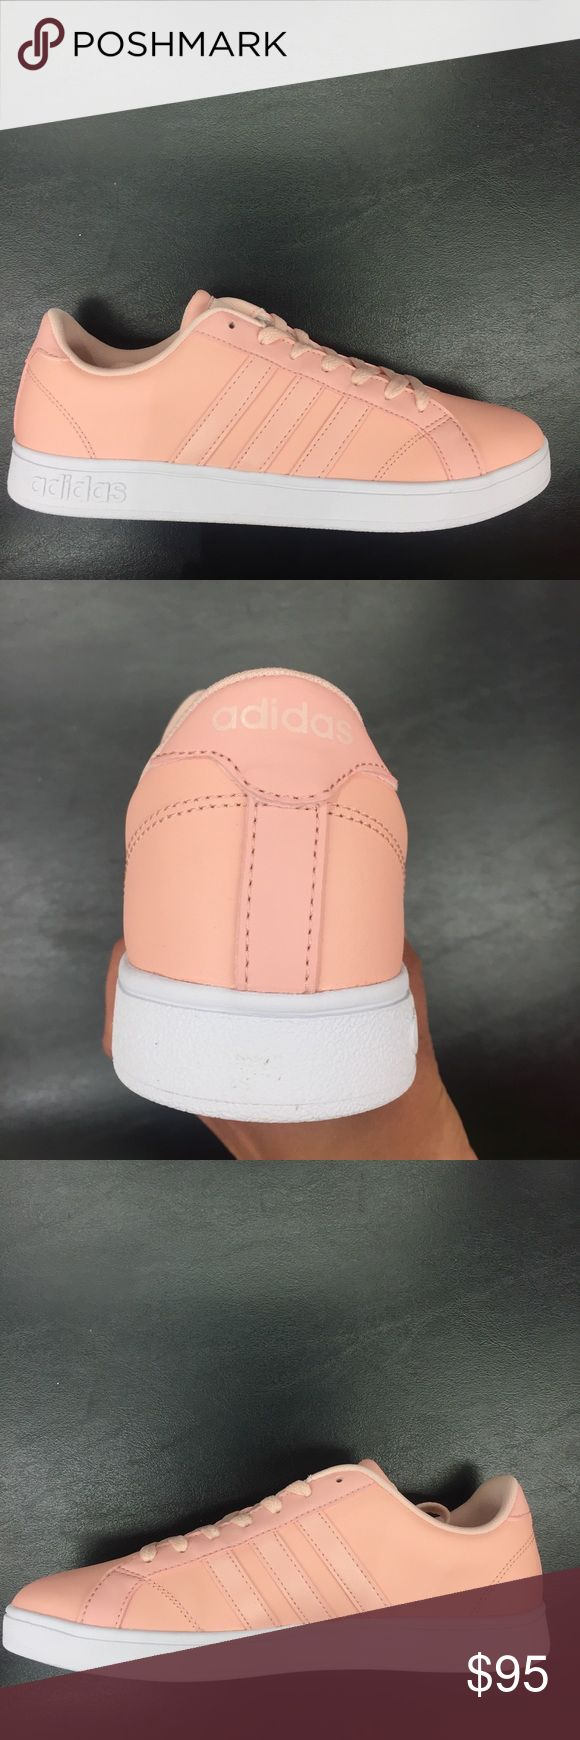 NWT 🌸MAKE OFFER🌸 Adidas Baseline Pink Sneaker 🌸 Brand new in original box!! Add some classic style to your casual wardrobe with the sleek design of these women's Baseline sneakers from adidas.(accepting offers, no trades) 🌸 adidas Shoes Sneakers